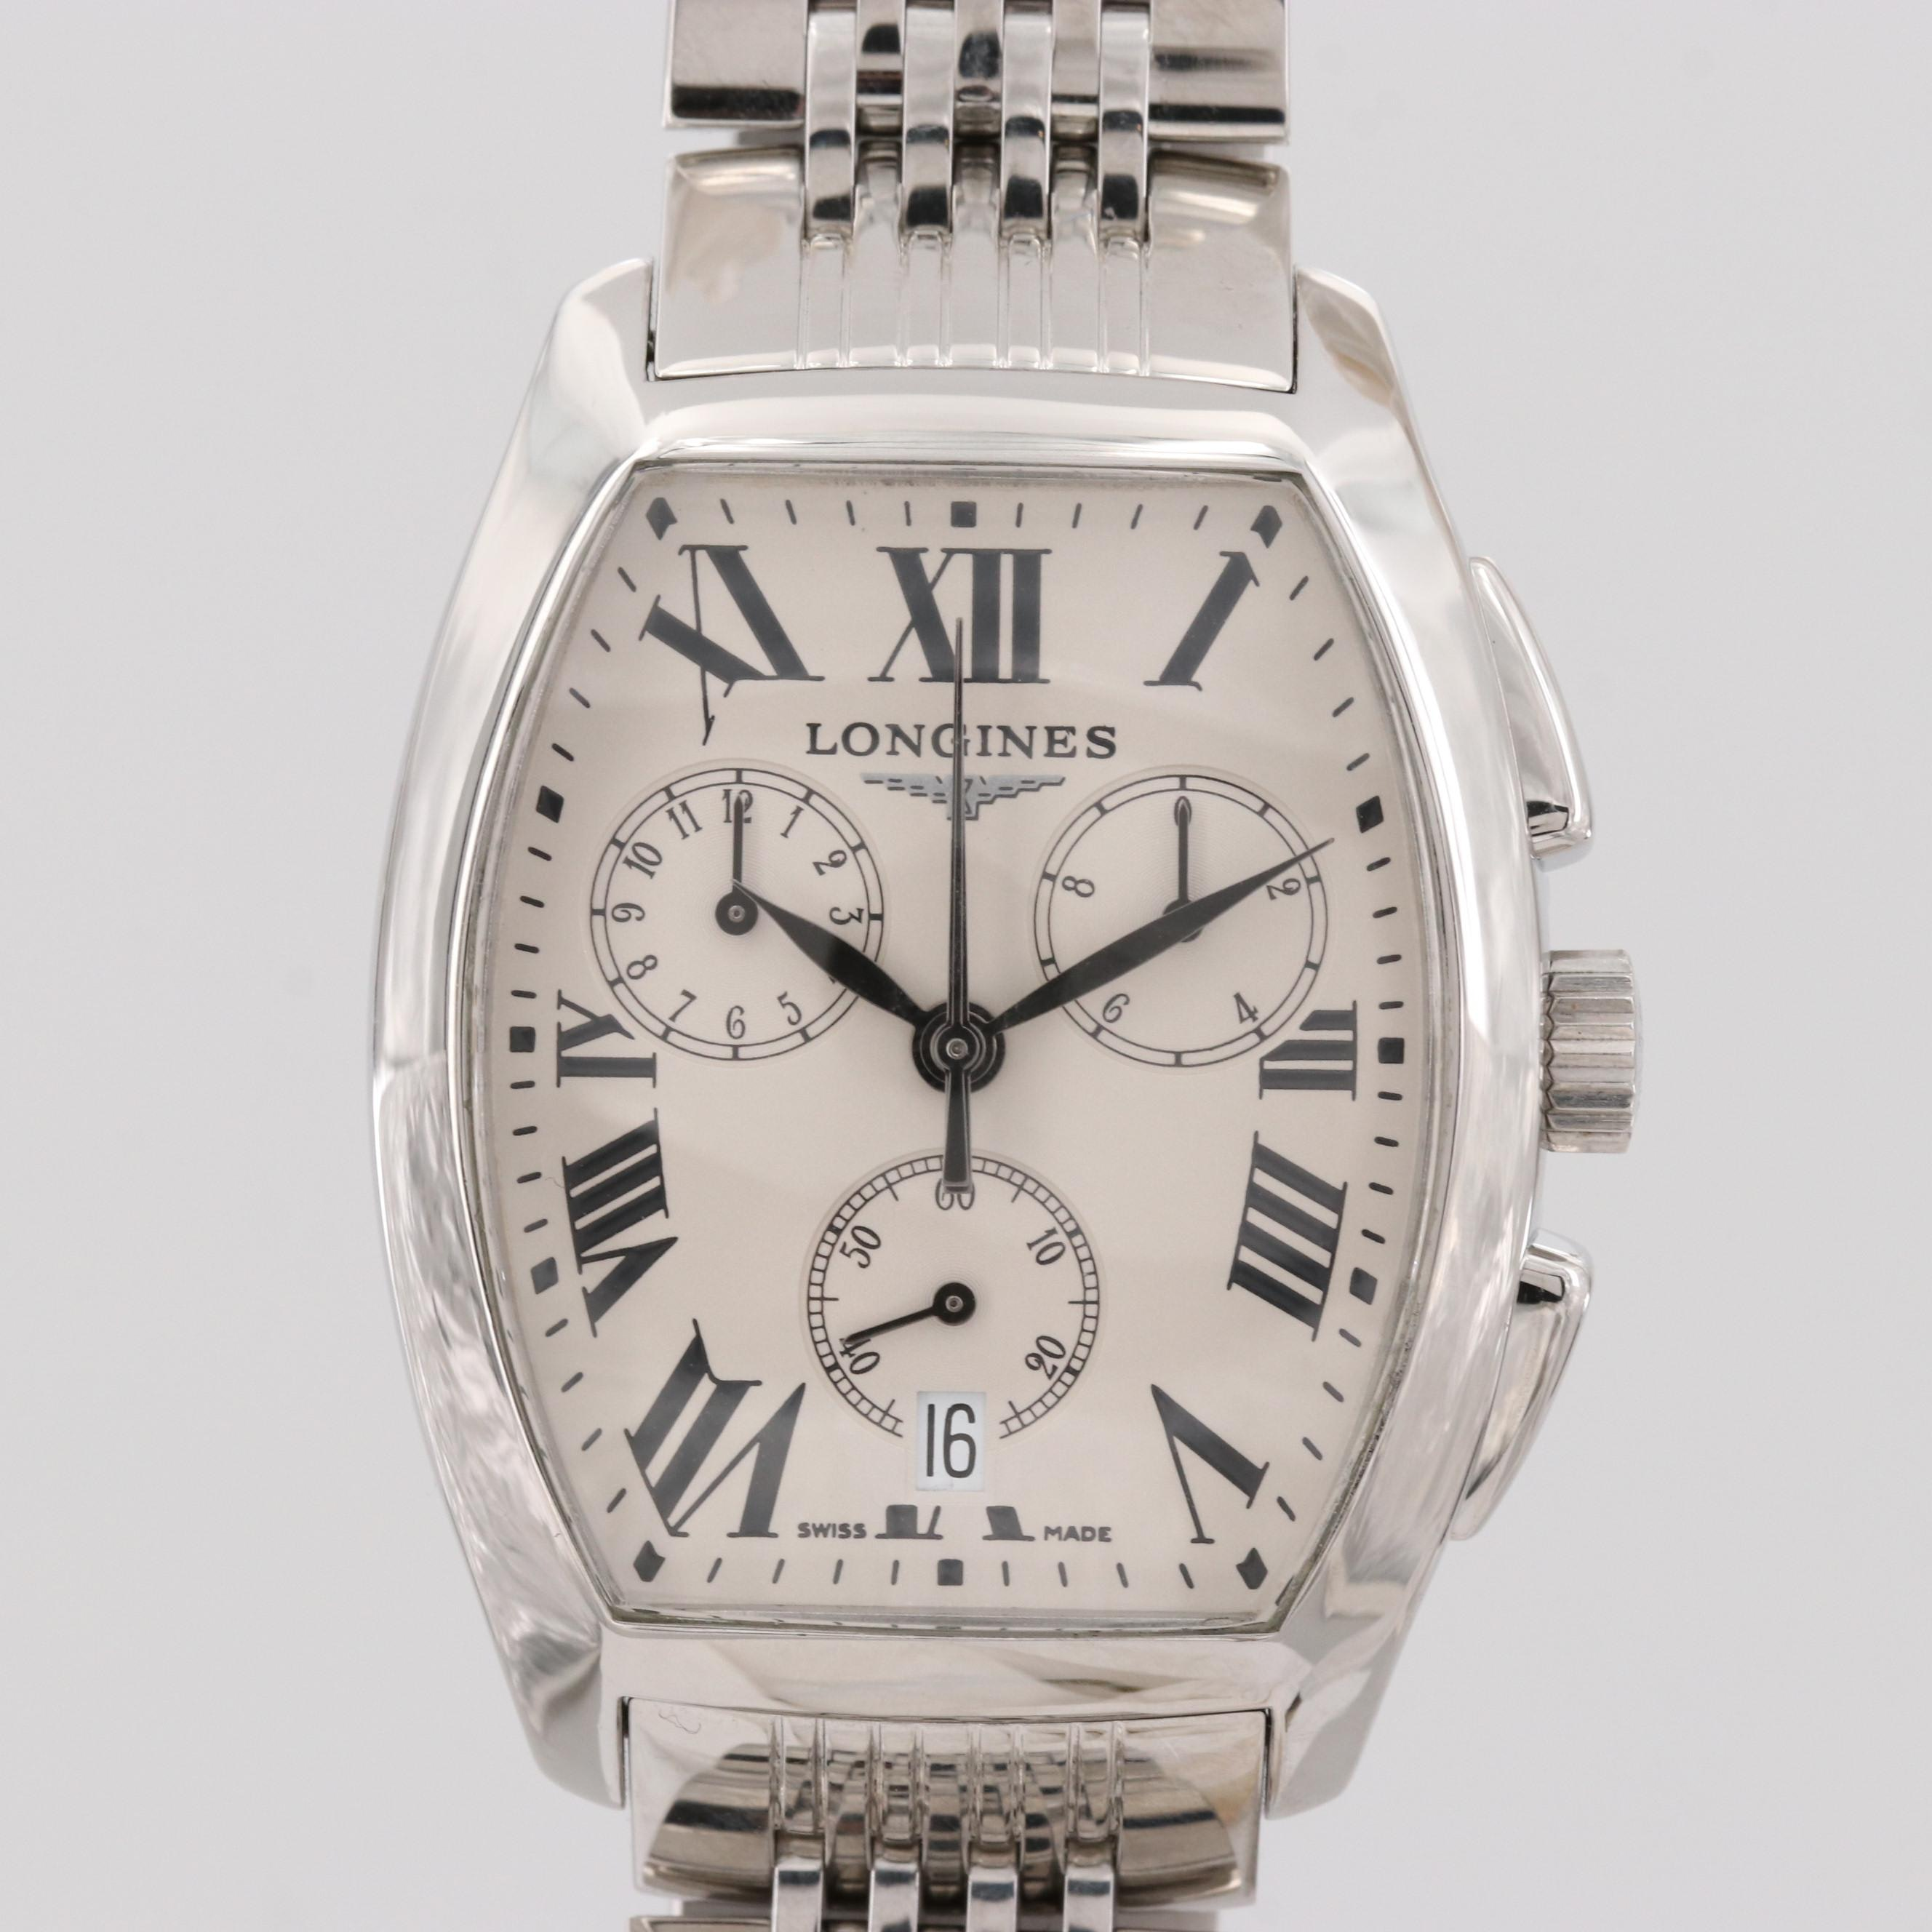 longines Evidenza Stainless Steel Quartz Chronograph Wristwatch